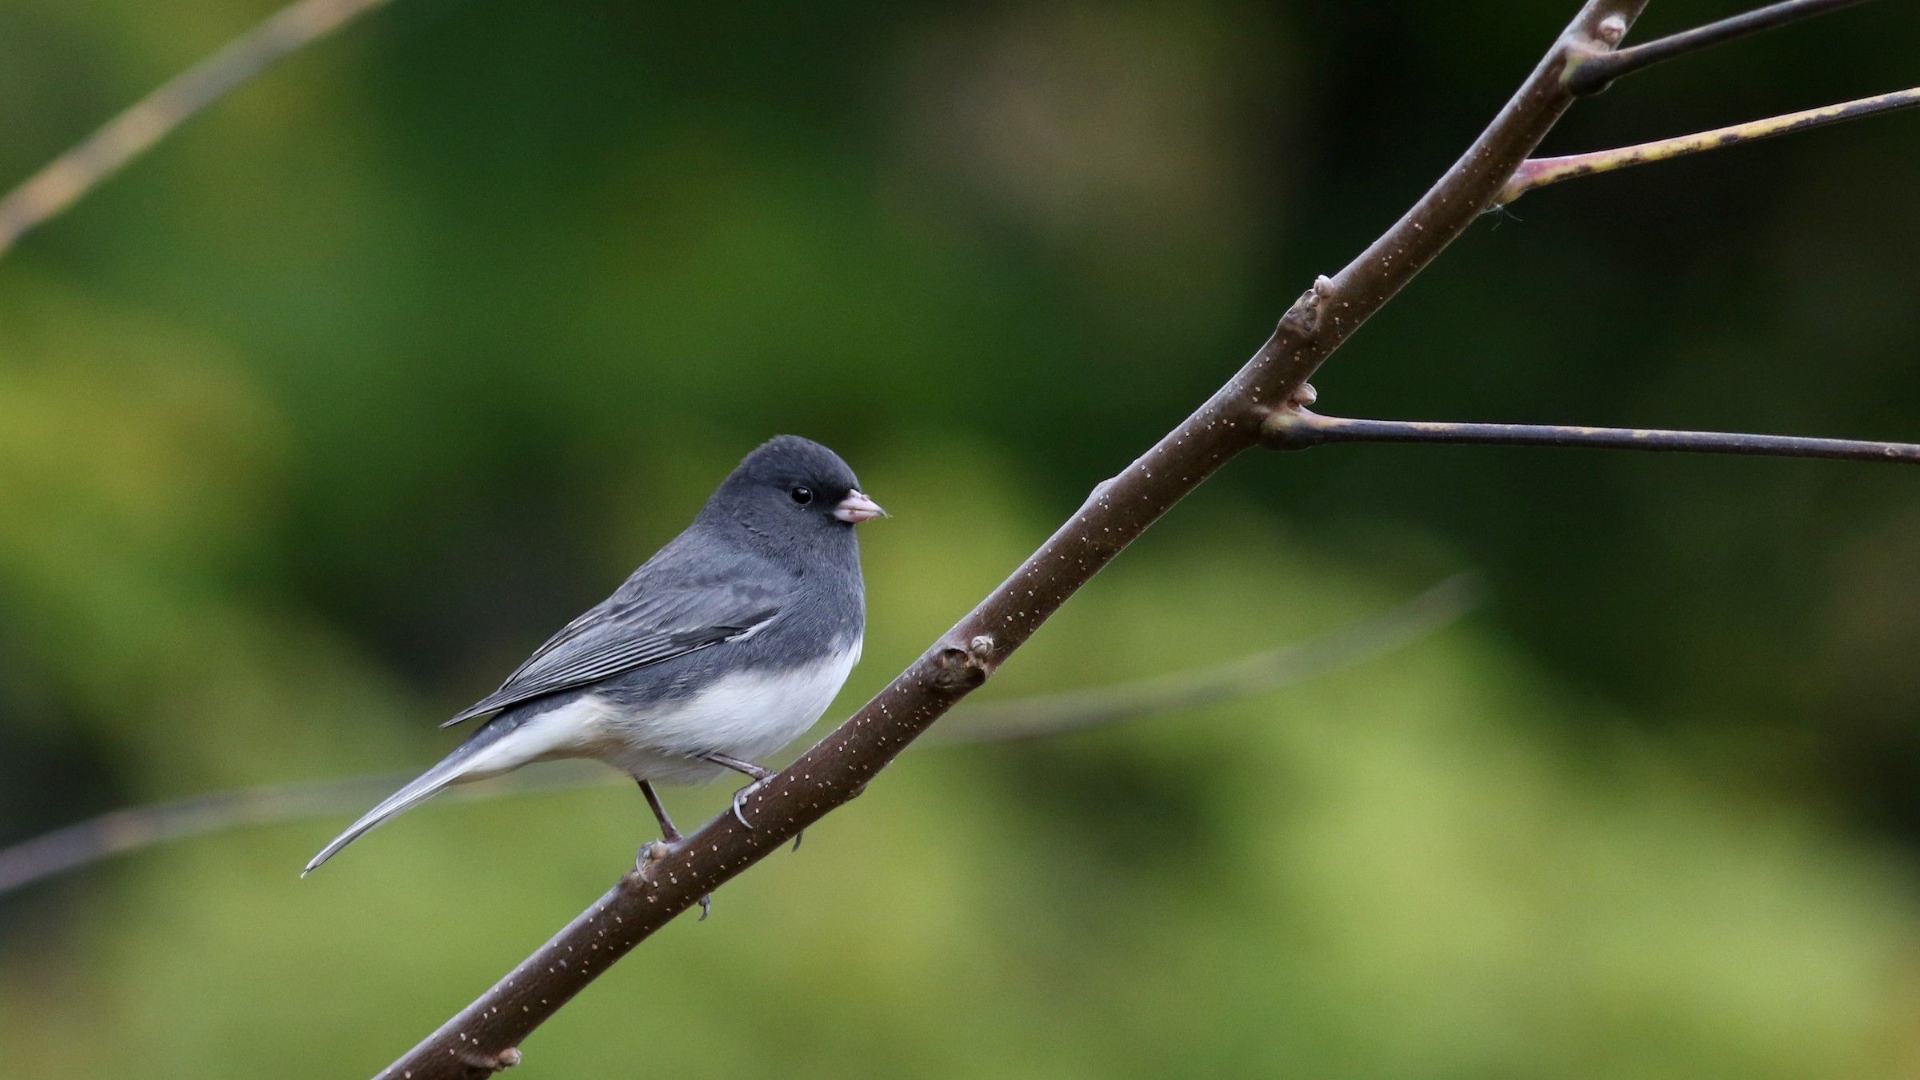 North America has lost 3 billion birds in 50 years